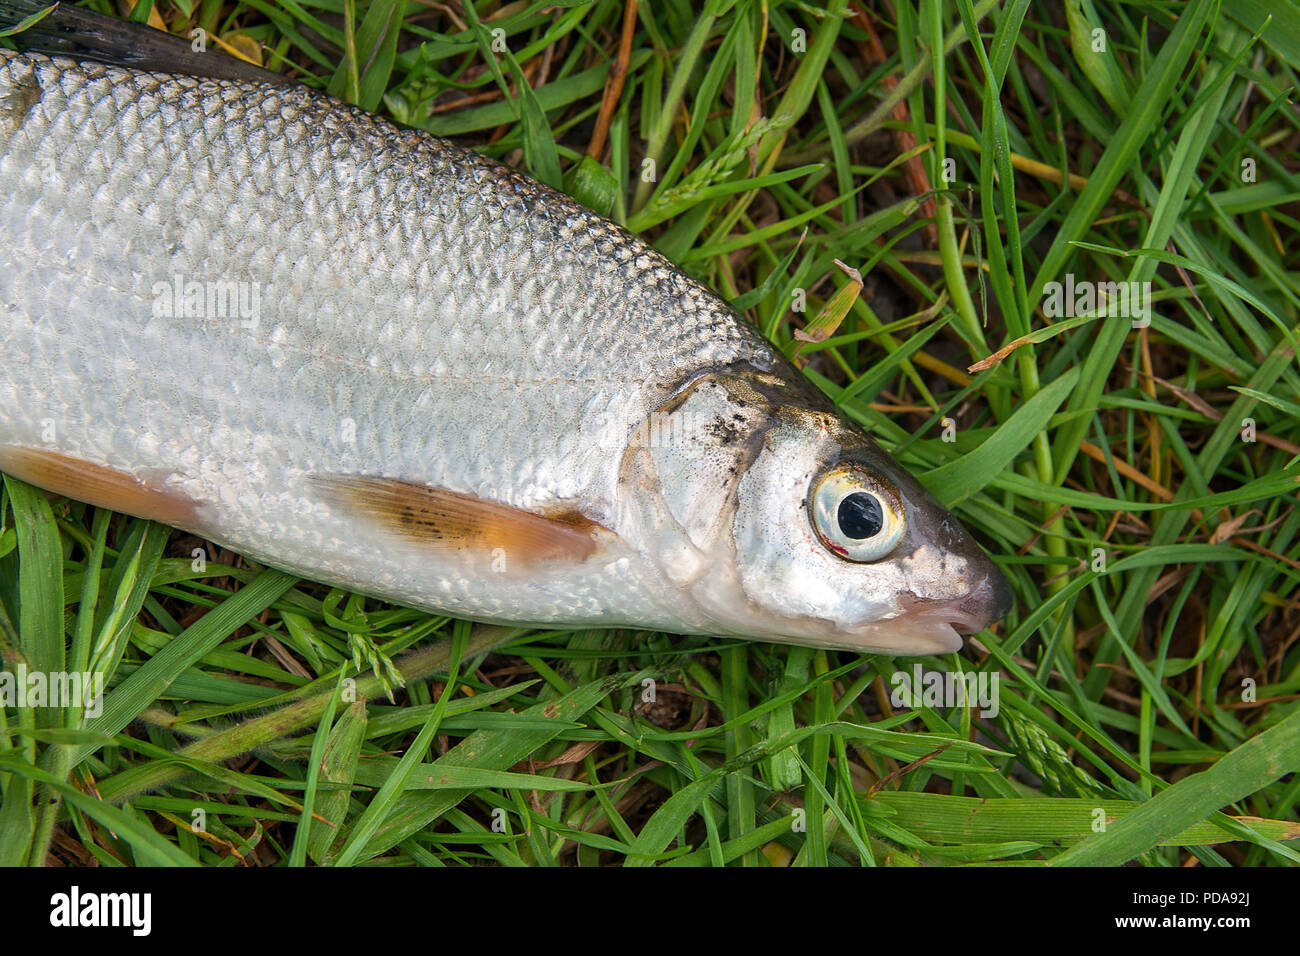 Close up view of just taken from the water freshwater common nase fish known as European potamodromous cyprinid fish on green grass. Stock Photo